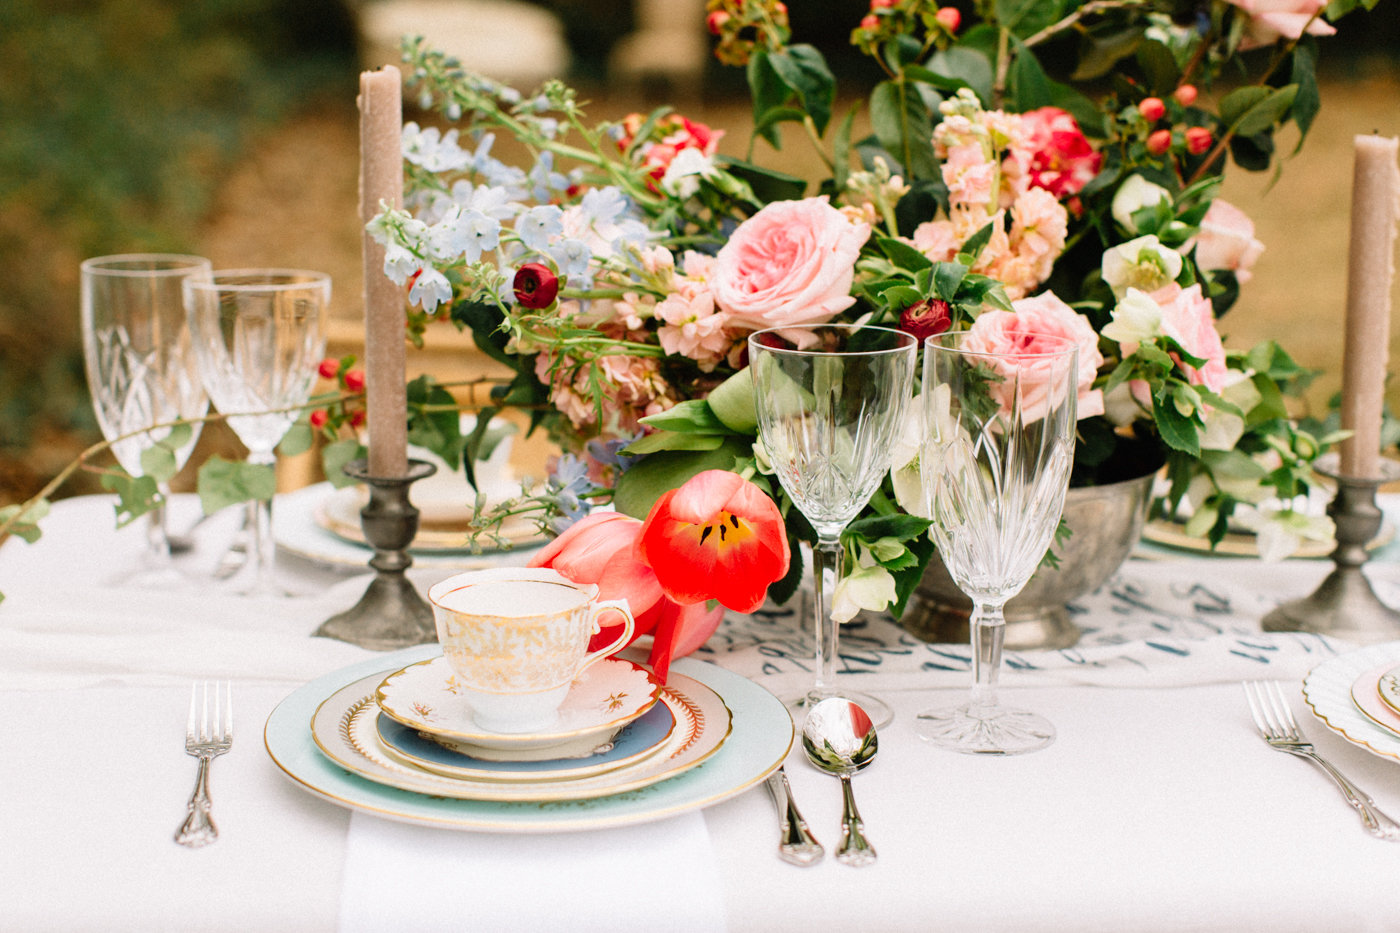 wedding tablescapes - photo by 4 Corners Photography http://ruffledblog.com/backyard-elopement-inspiration-for-valentines-day